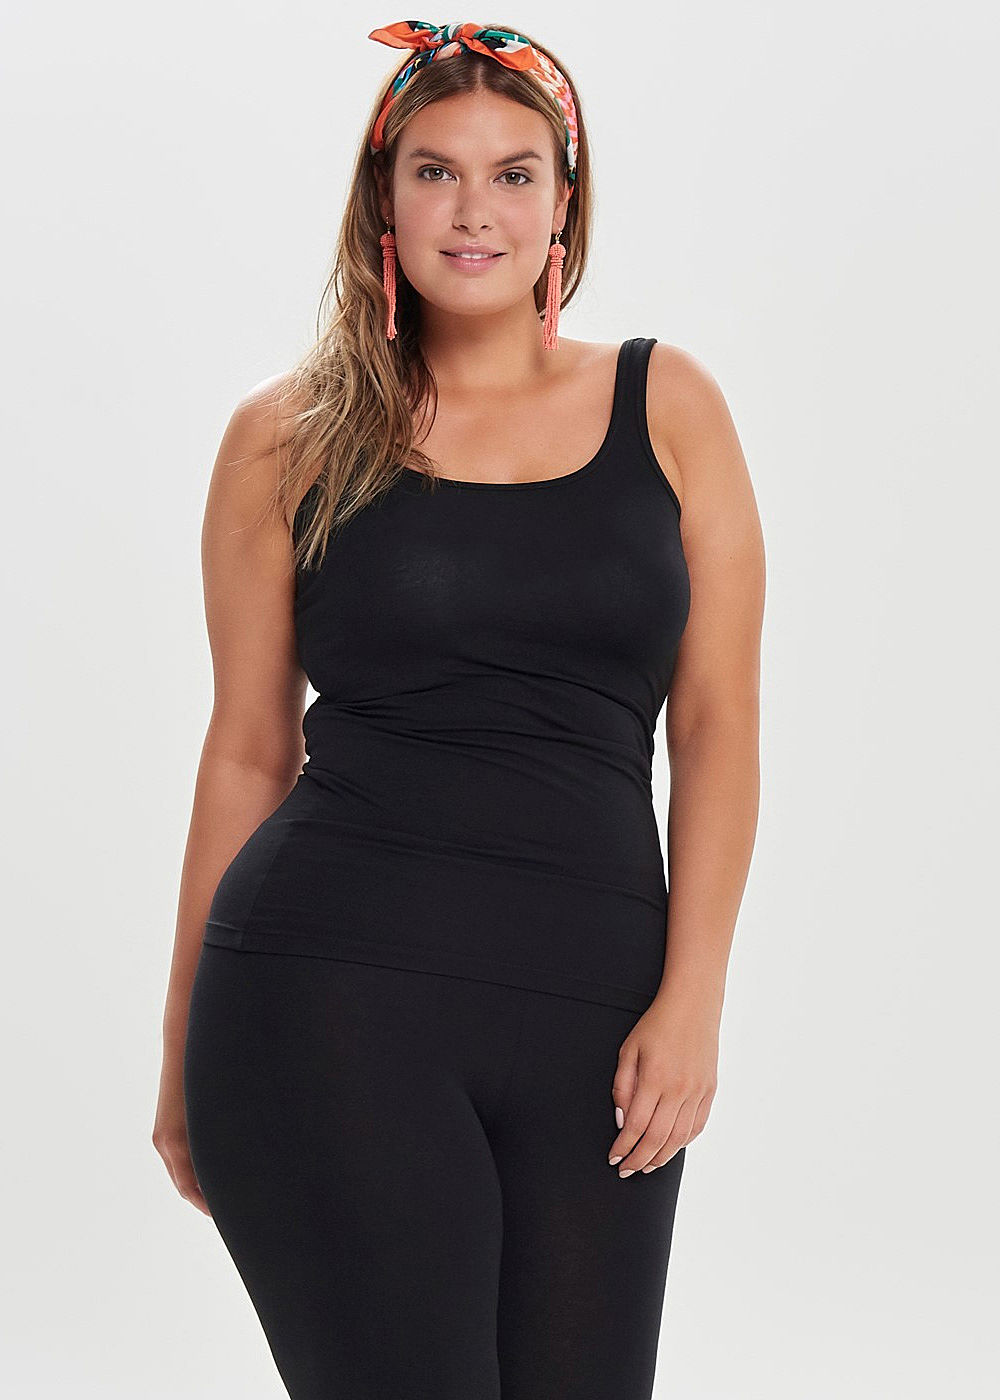 ONLY Carmakoma Damen Curvy Basic Tank Top schwarz - Art.-Nr.: 19031171-54-BK